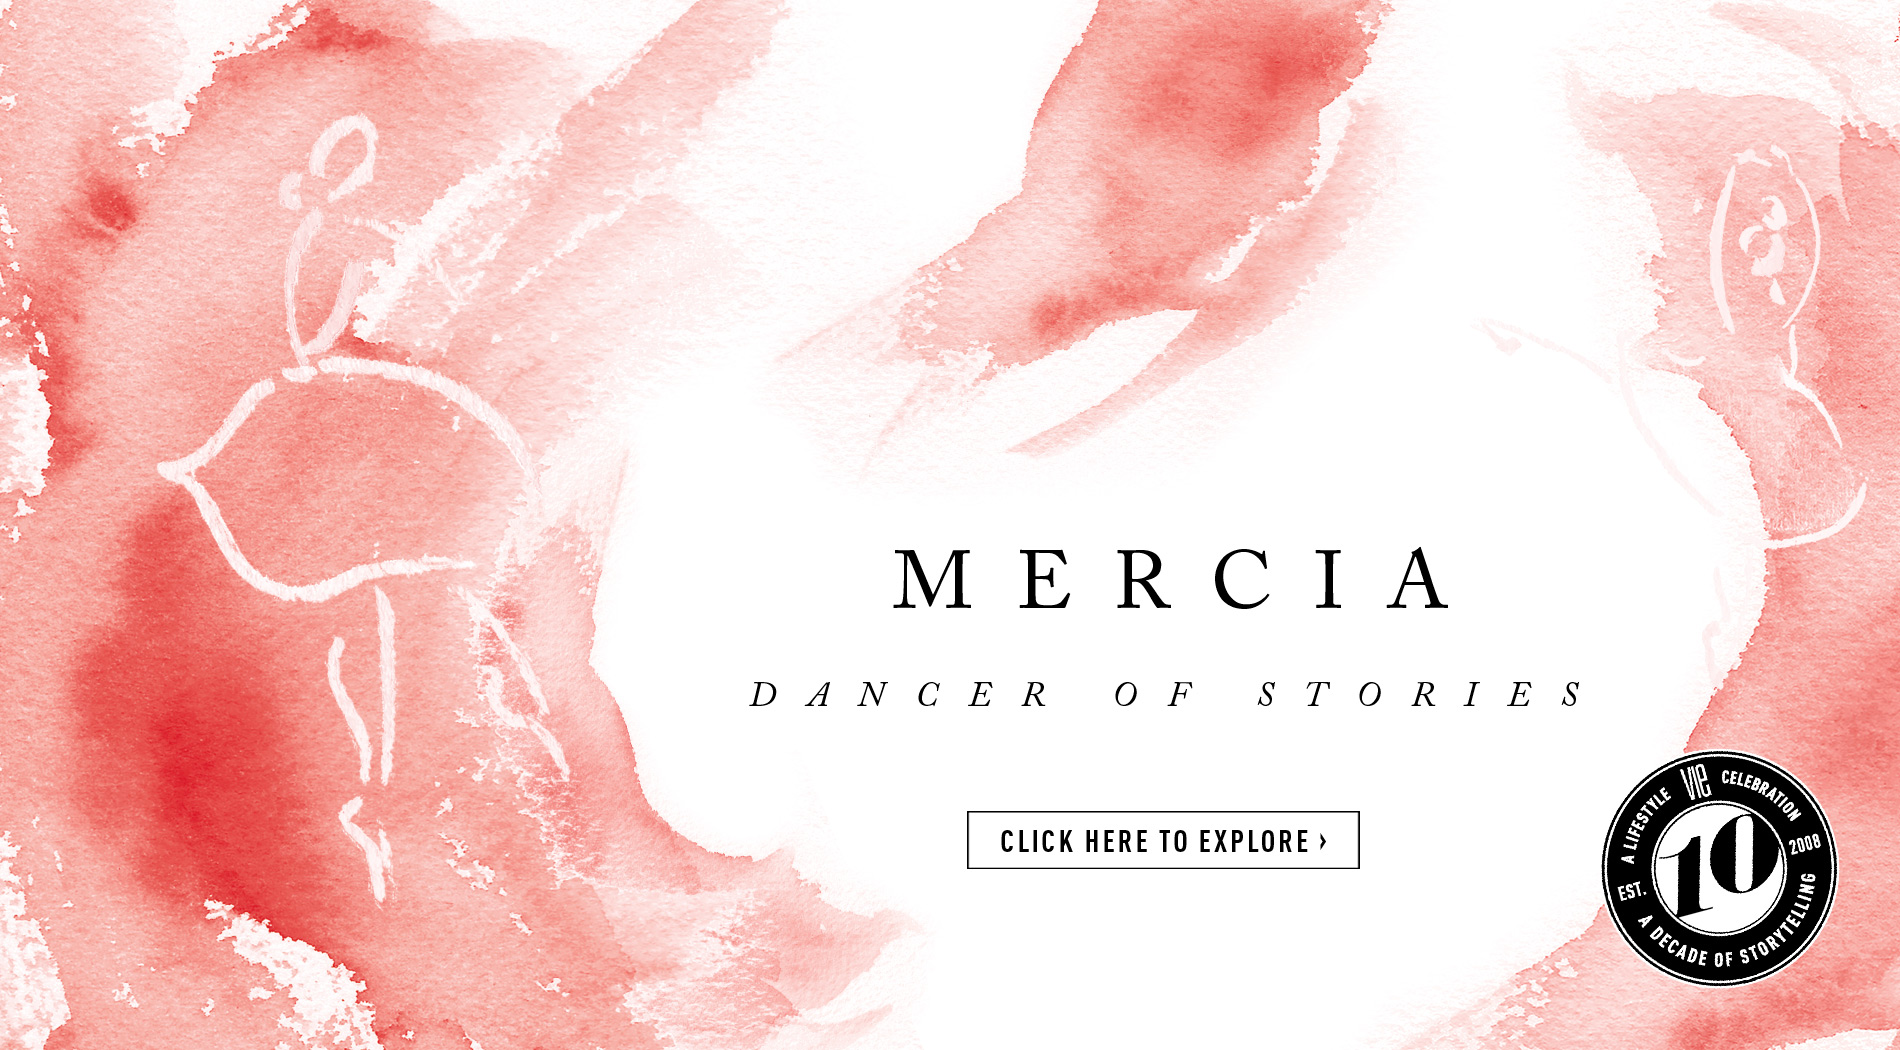 VIE Magazine - The Entertainers Issue - March 2018 - Mercia - Dancer of Stories